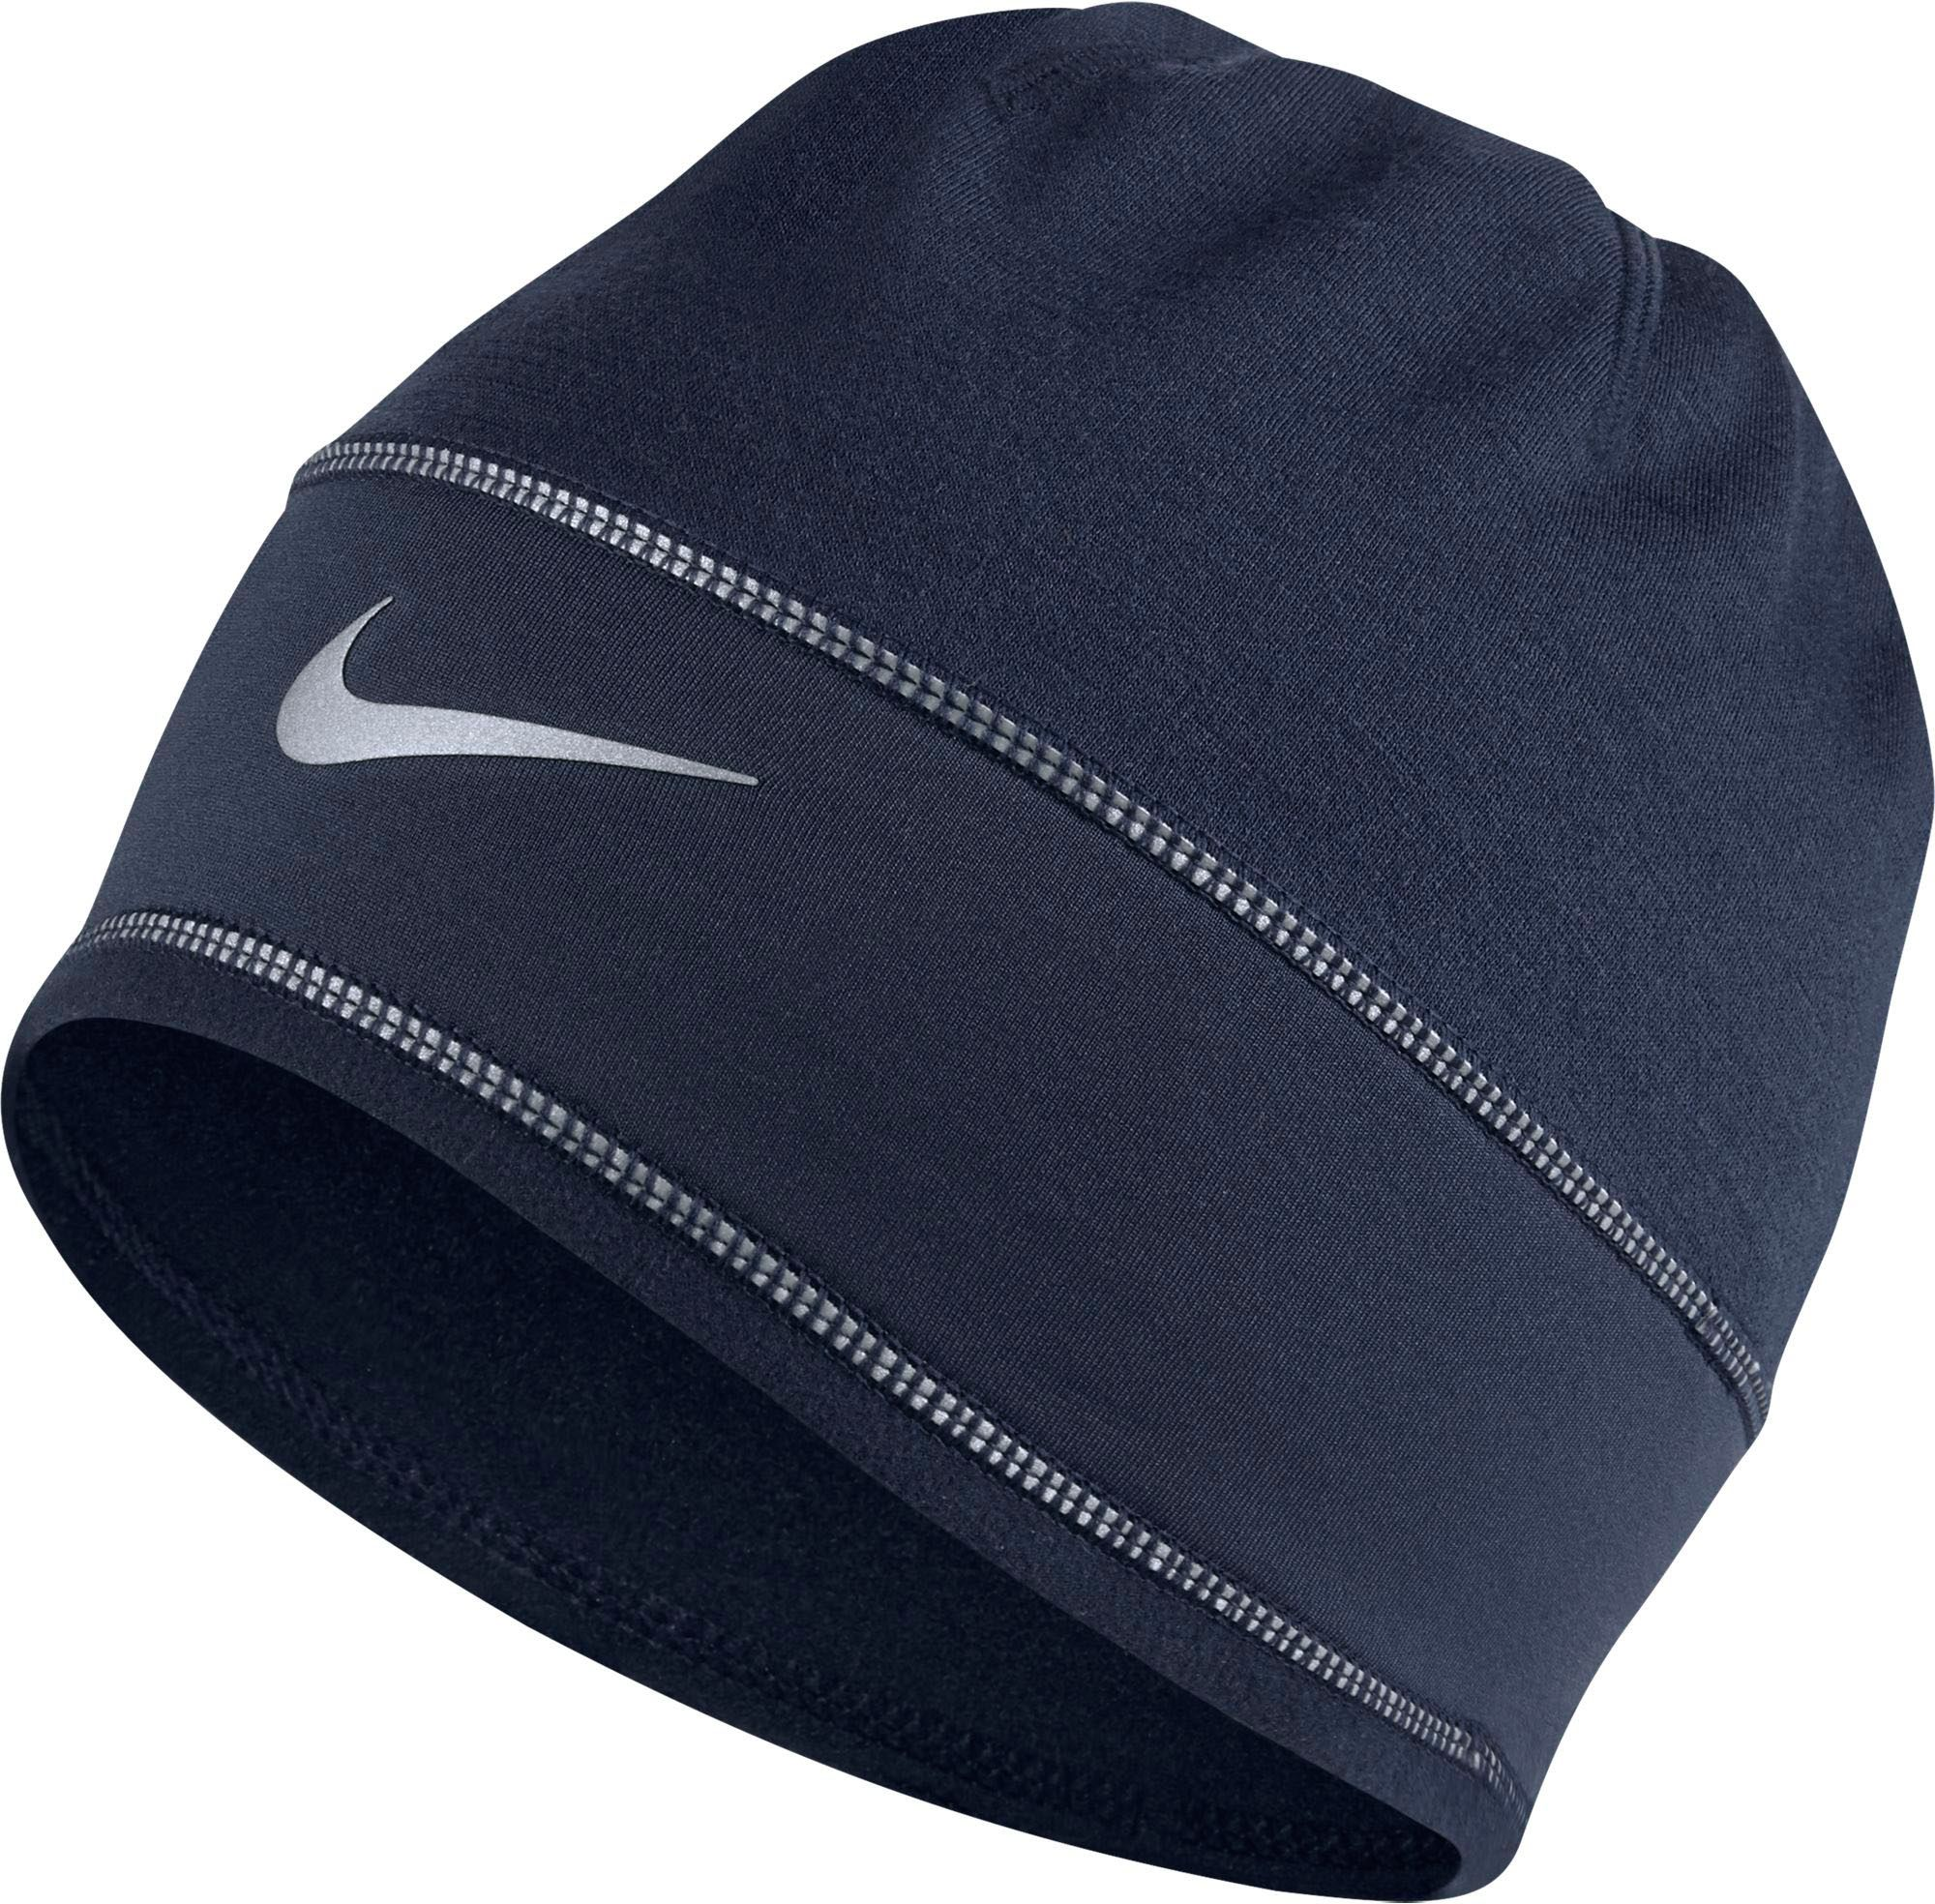 Mens gloves next - Product Image Nike Men S Dry Knit Running Hat